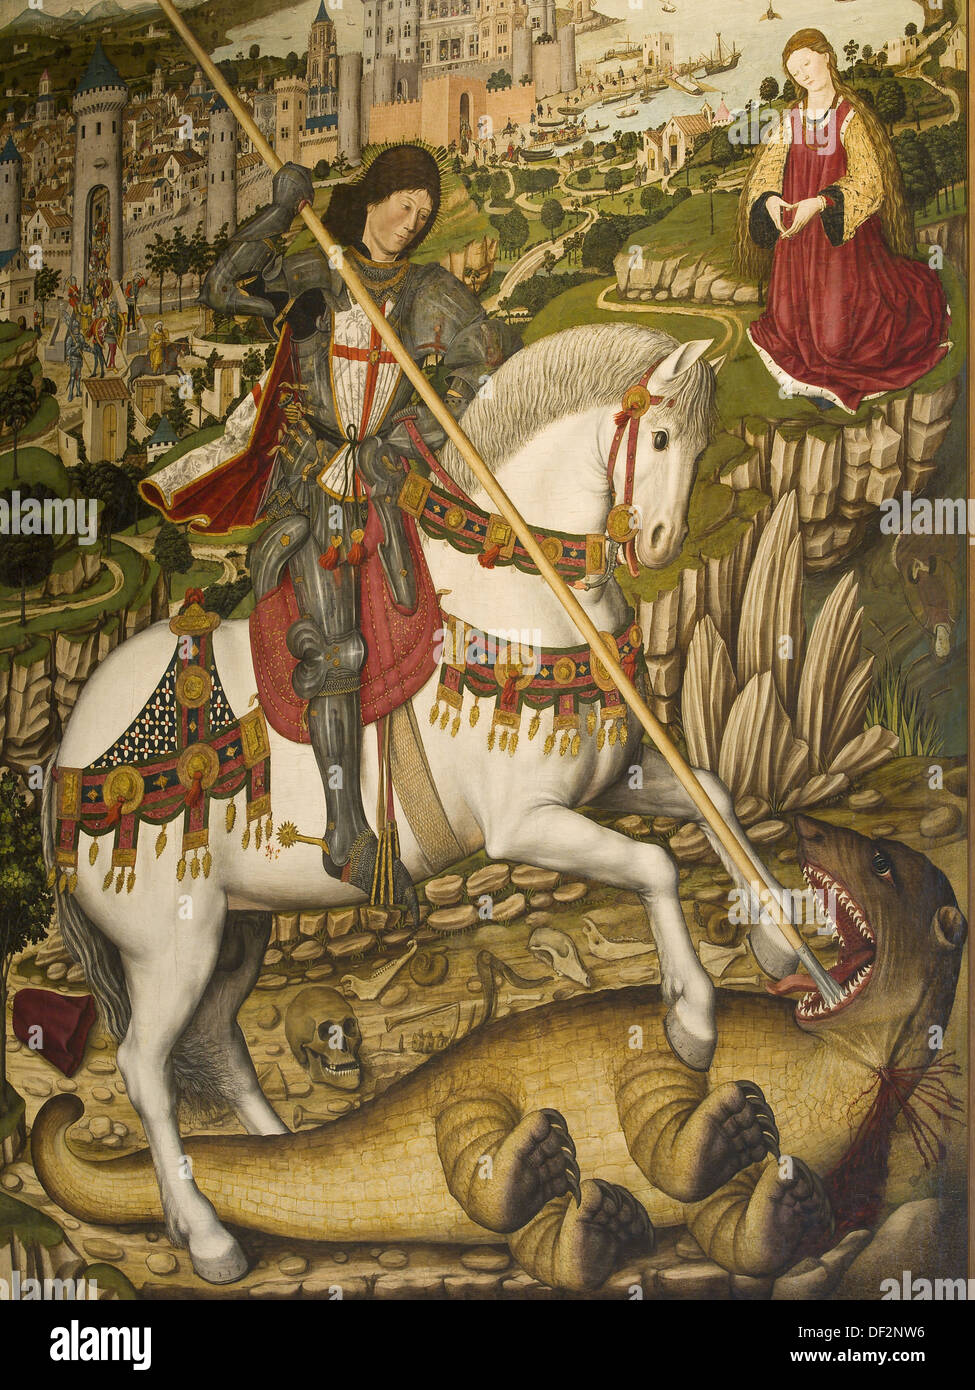 St George and the Dragon (1468-1470, distemper and oil on wood), painting  by Pere Niçard, Diocesan Museum, Palma de Mallorca.